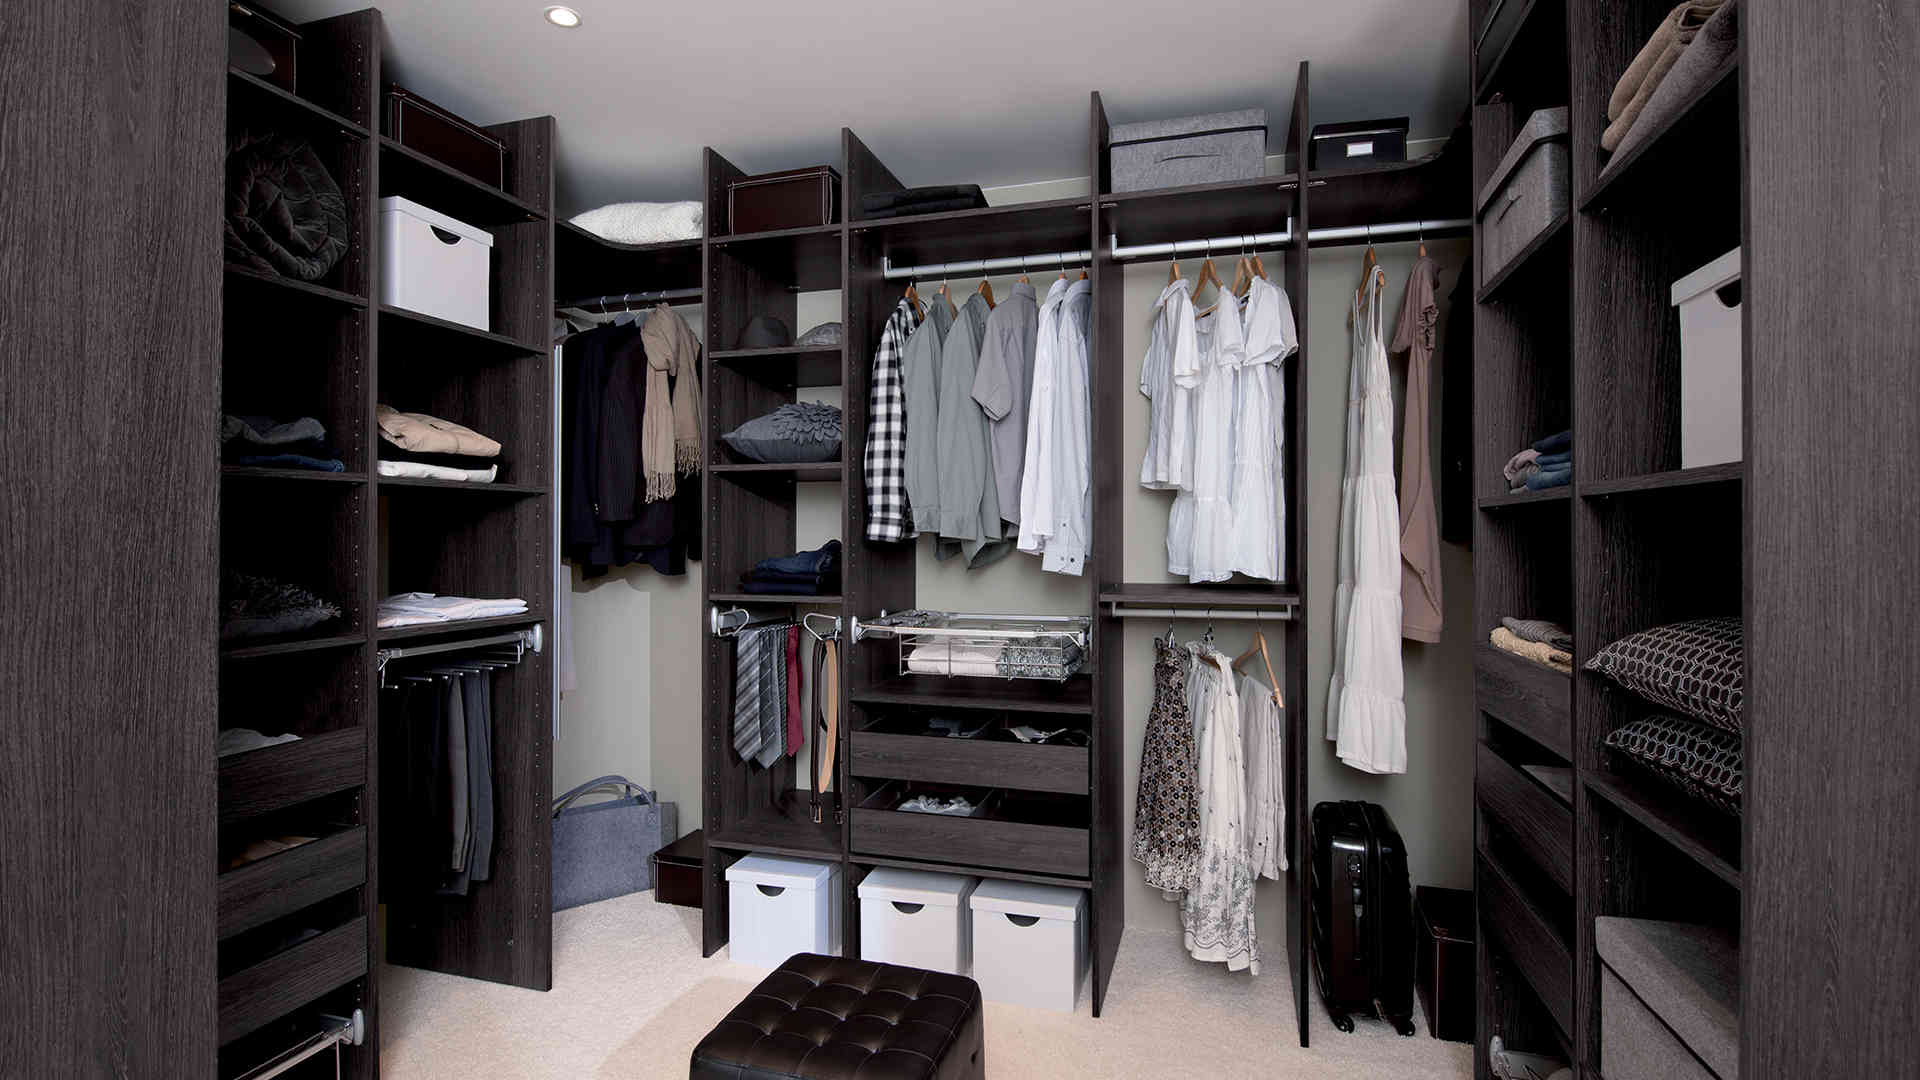 un dressing mon image derri re mon lit. Black Bedroom Furniture Sets. Home Design Ideas